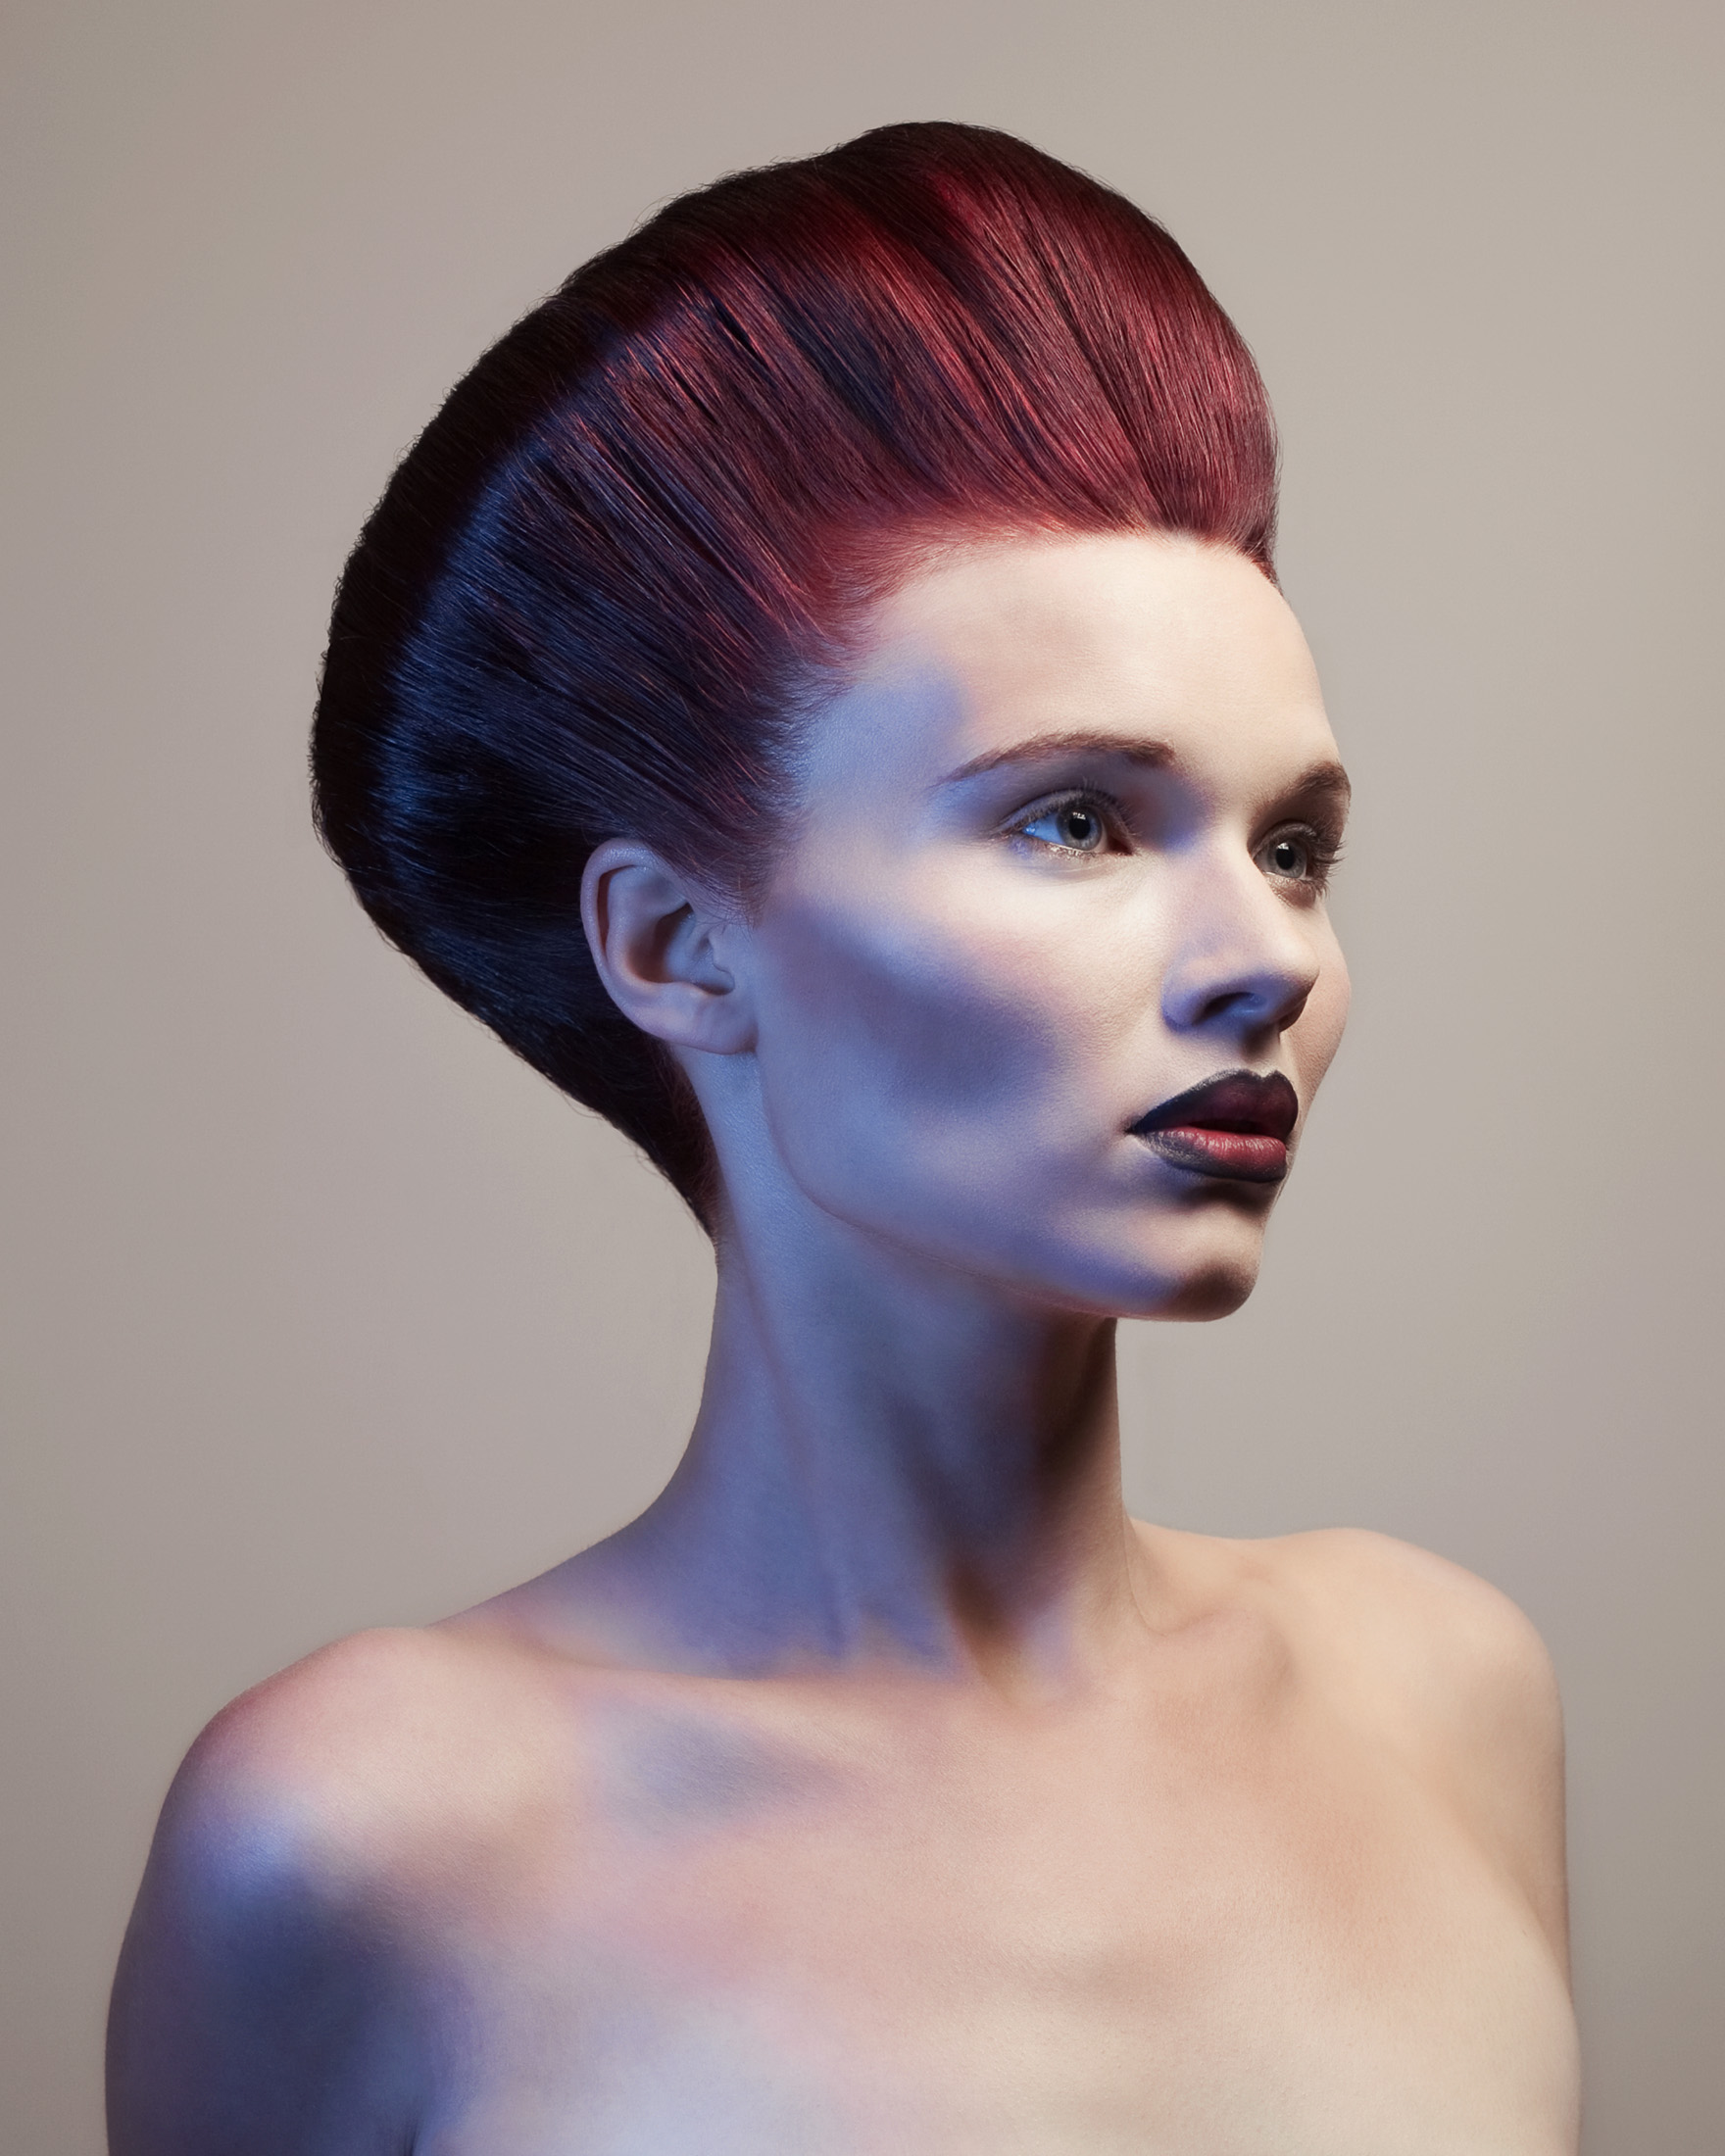 British Hairdressing Awards 2015 - By Noel Halligan